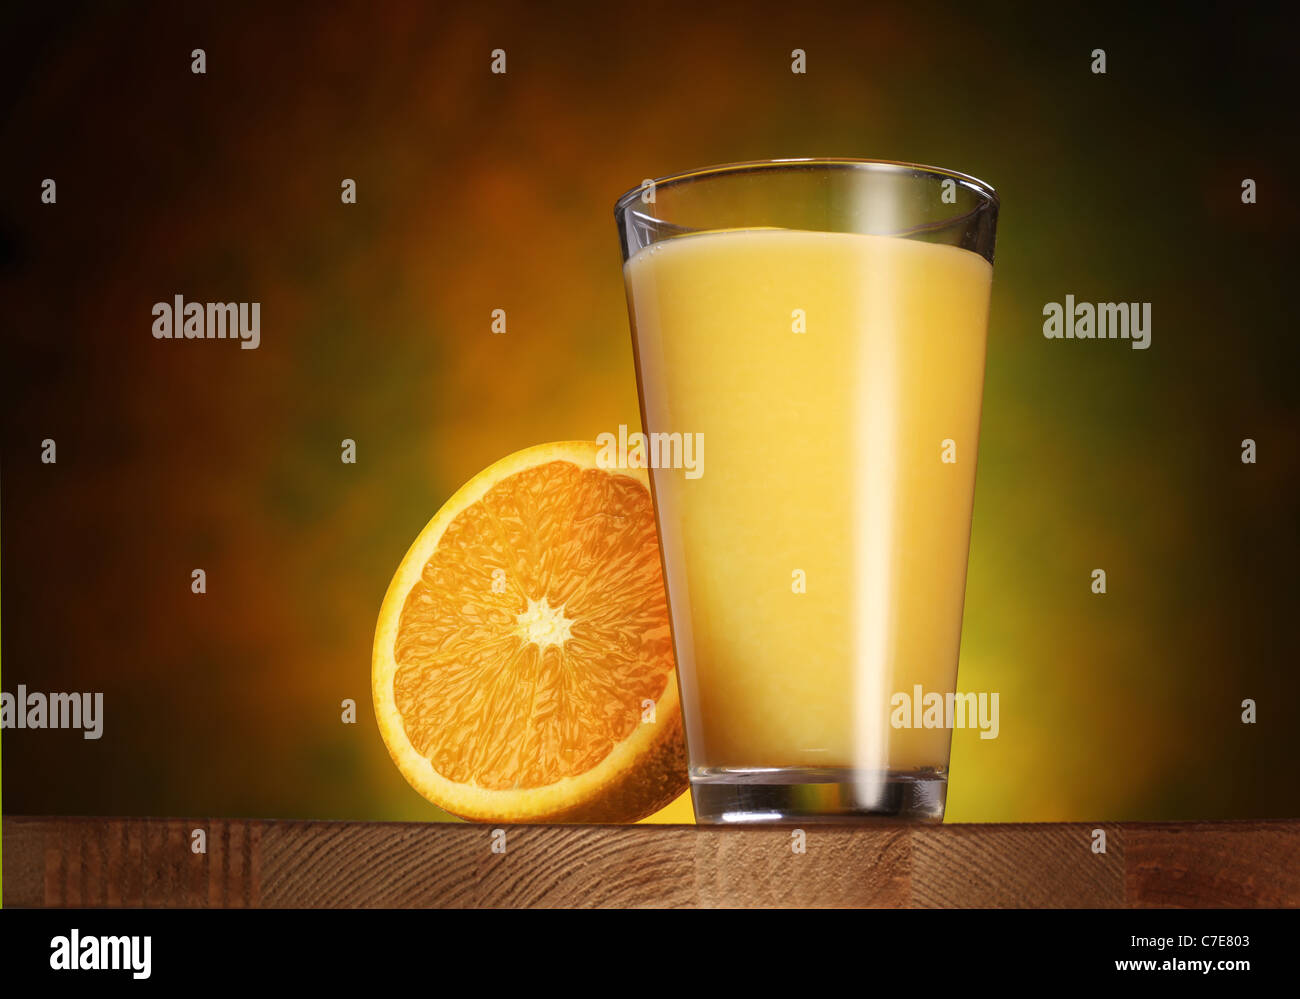 Glass of orange juice on a wooden board. - Stock Image